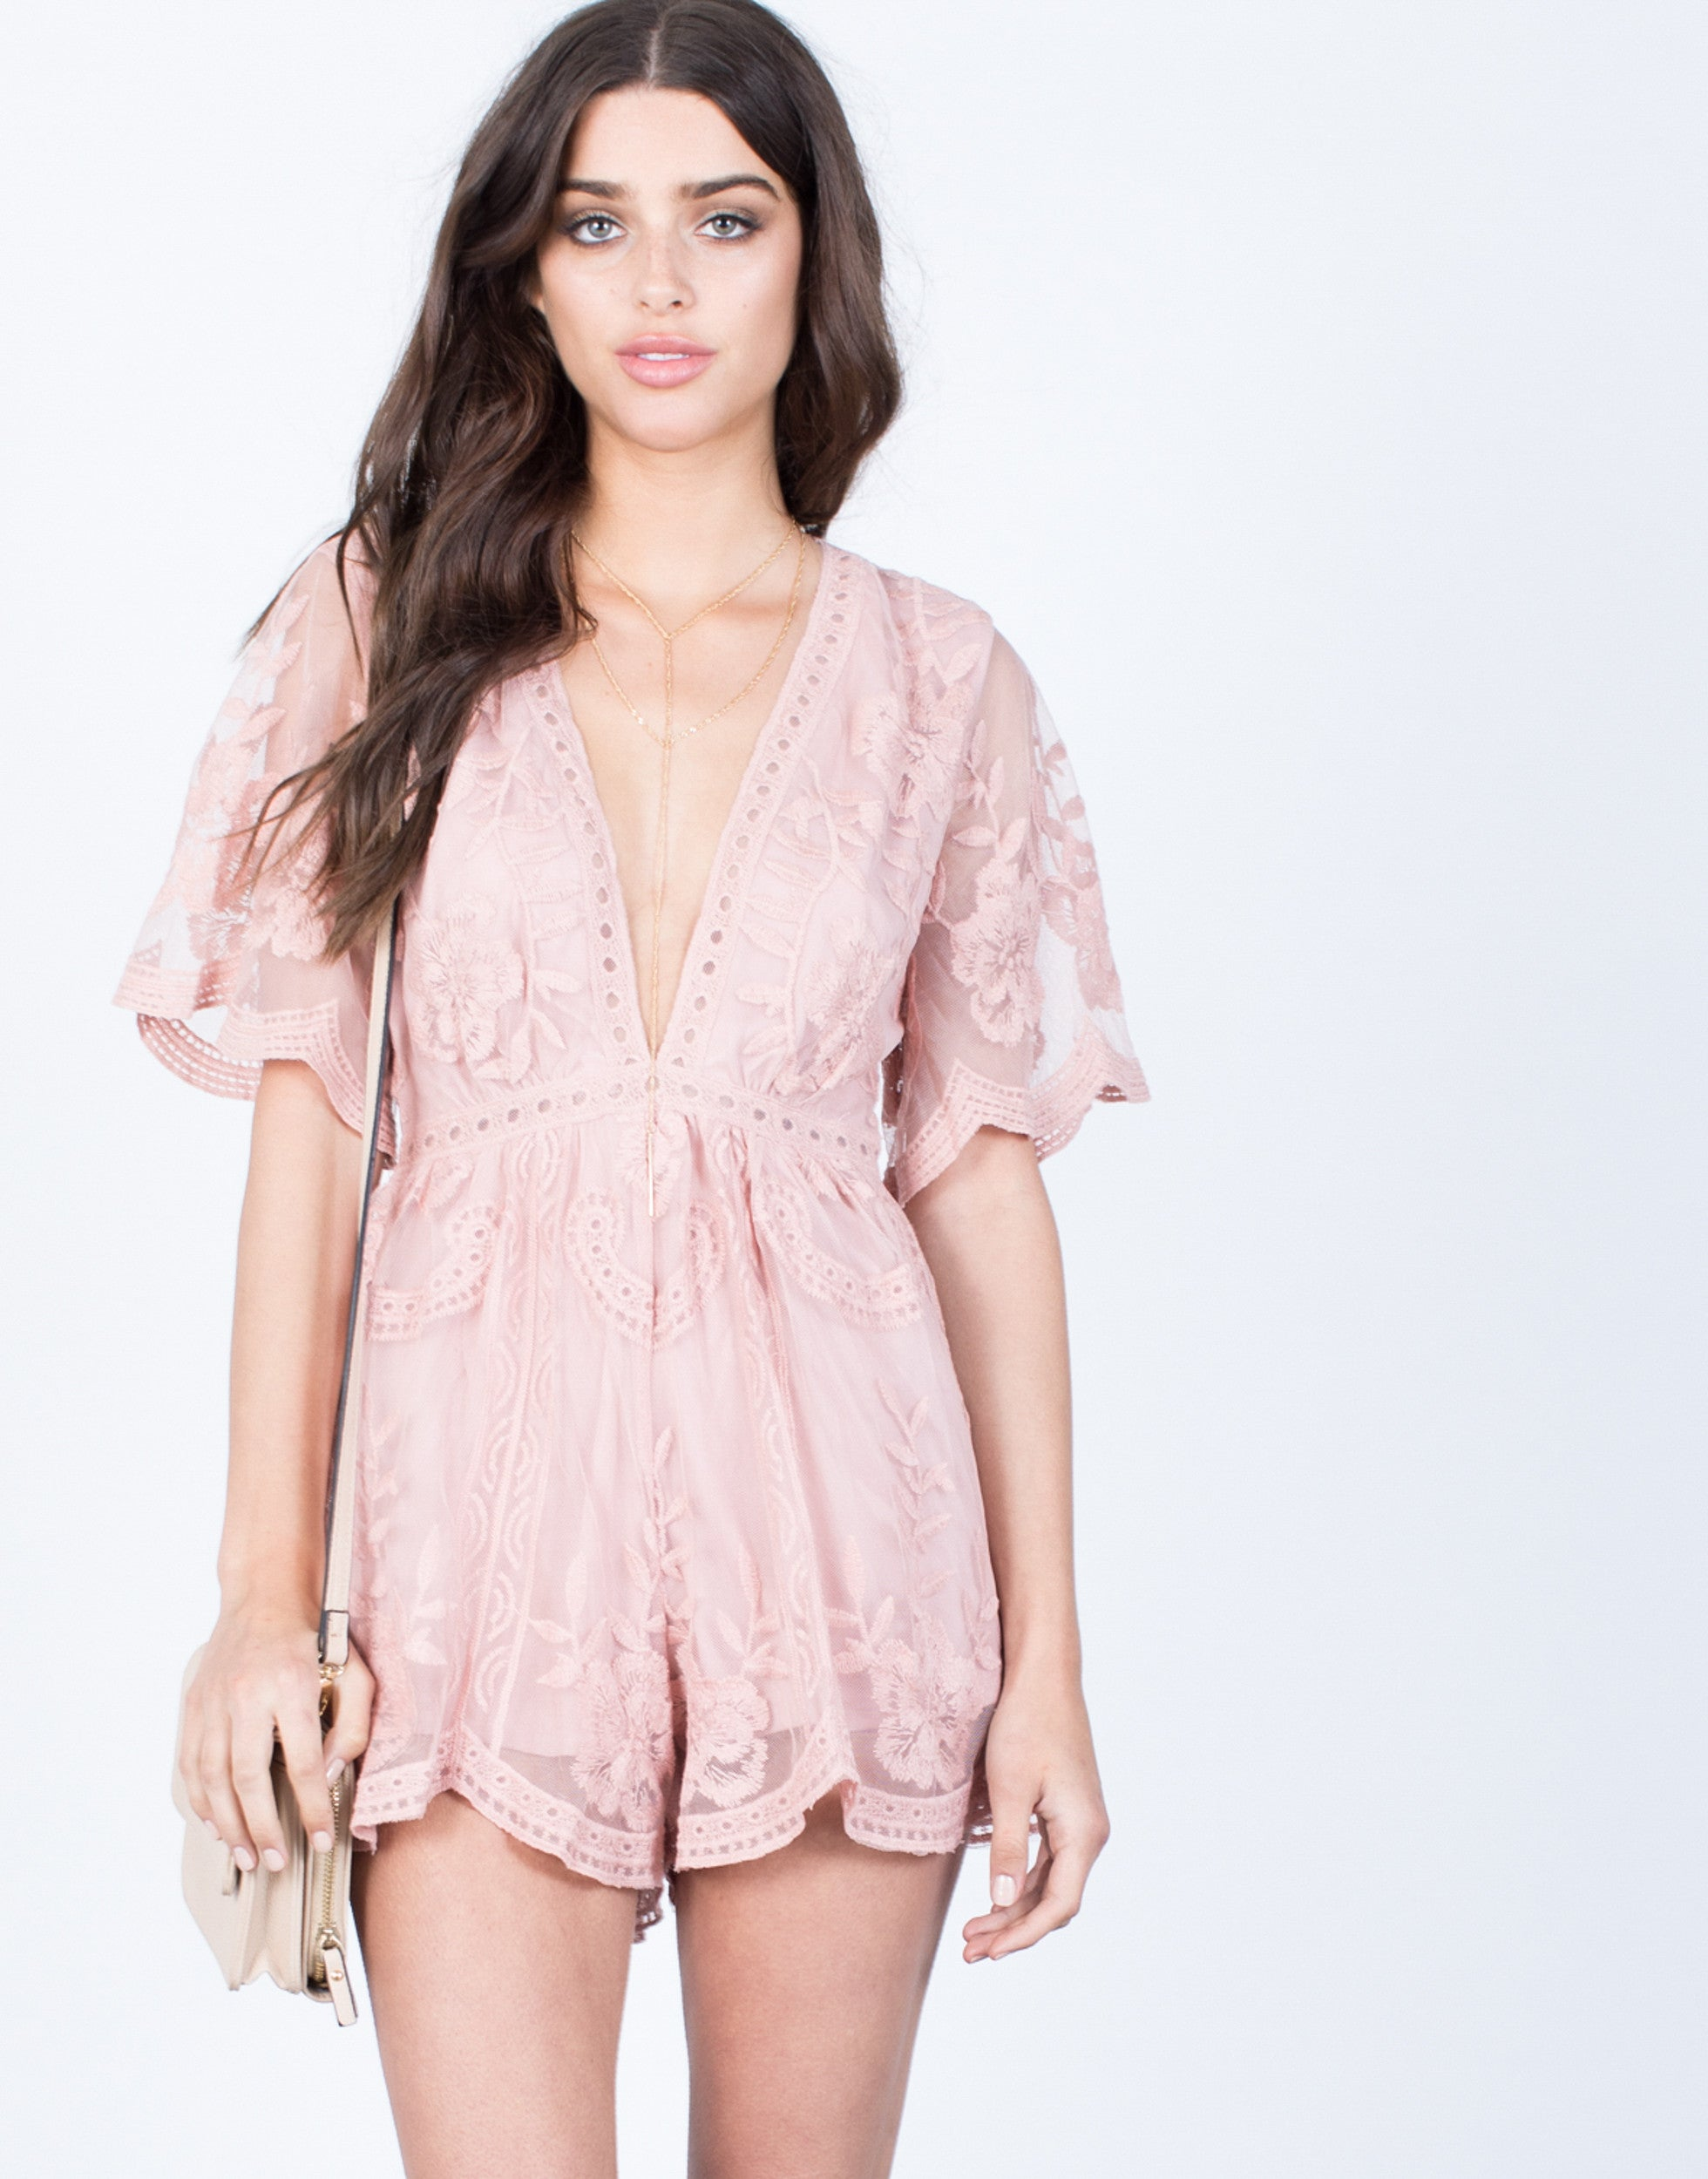 Front View of Blissful Floral Romper